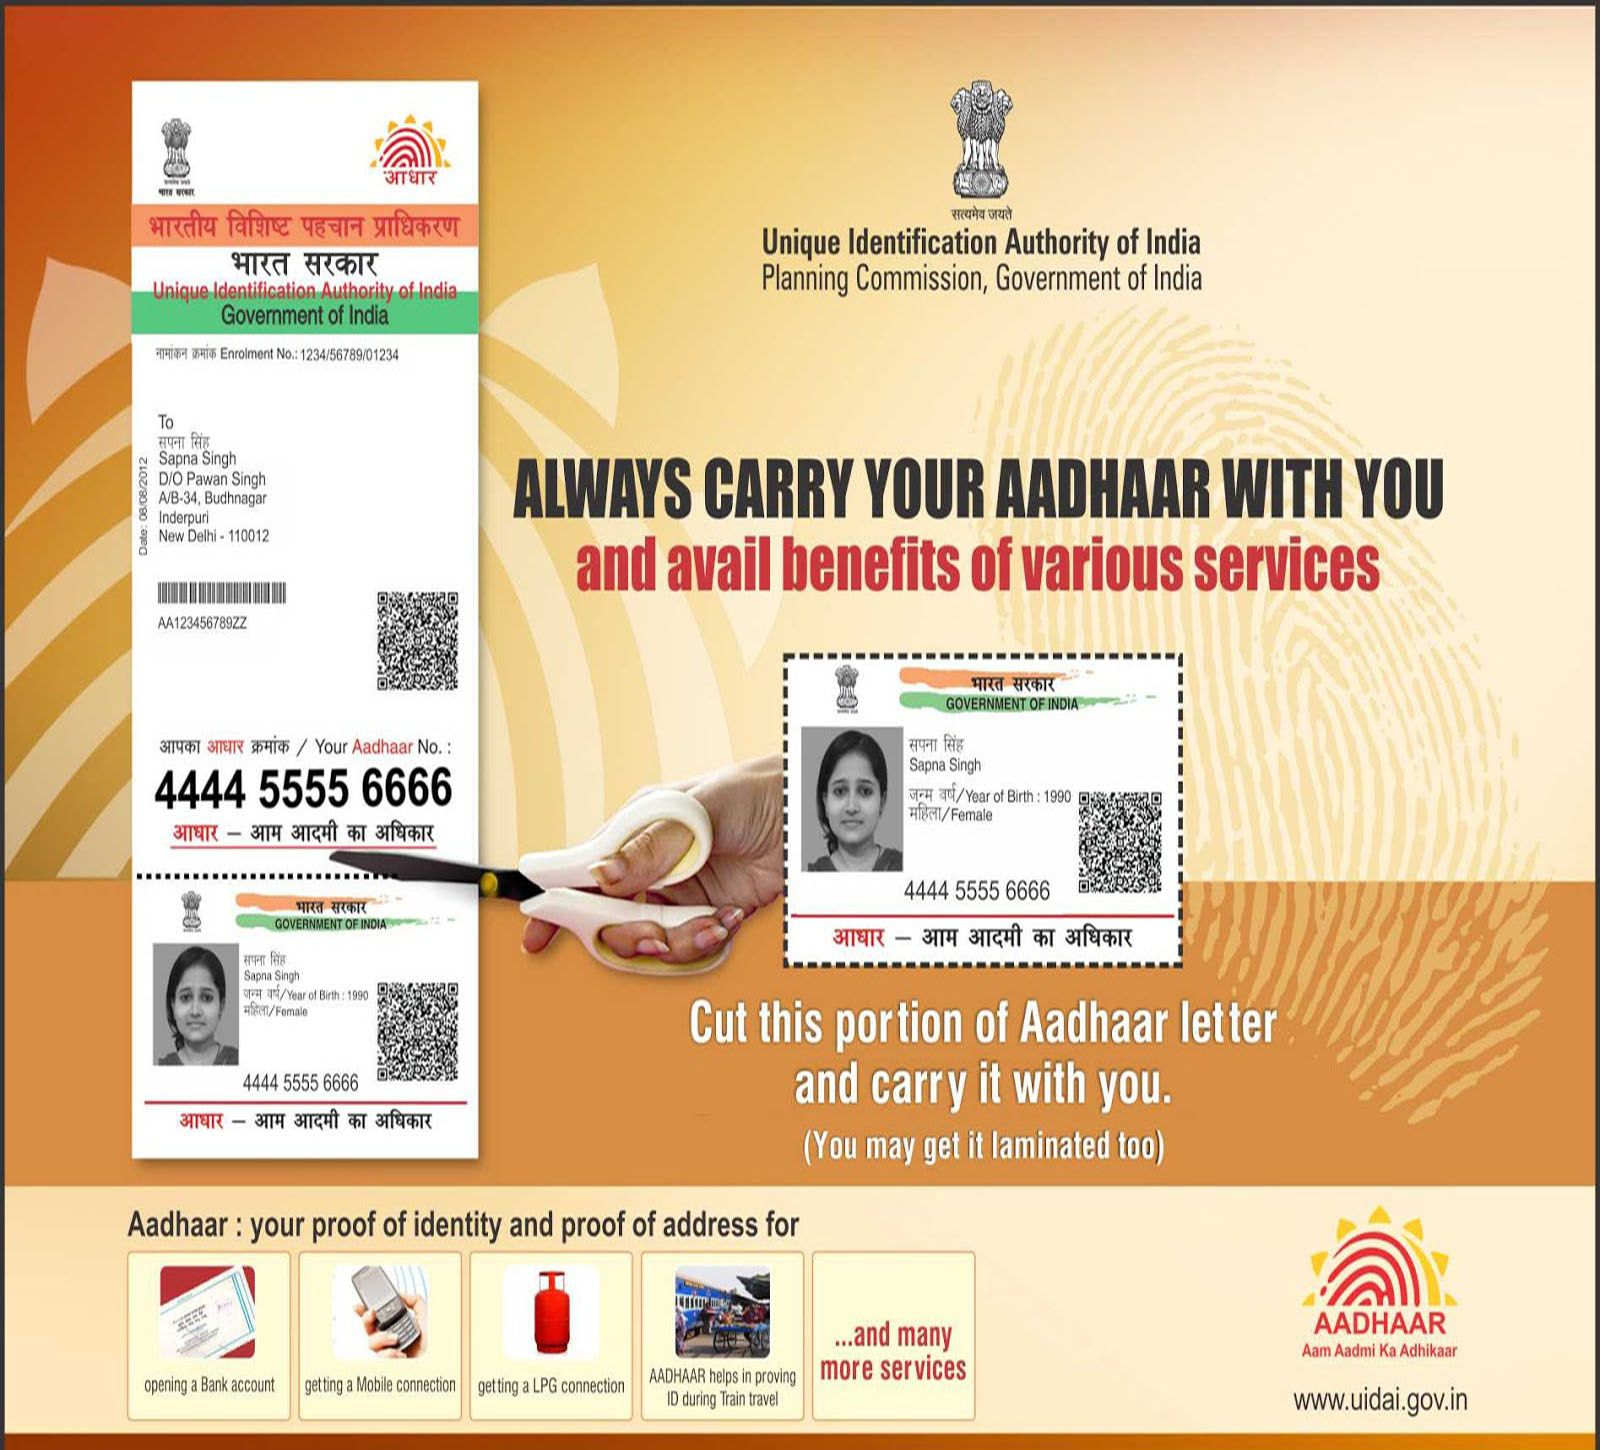 Uidai warns against agencies printing plastic aadhaar cards economic times - On Monday Supreme Court Decided To See Whether Aadhaar Scheme As Money Bill In Parliament